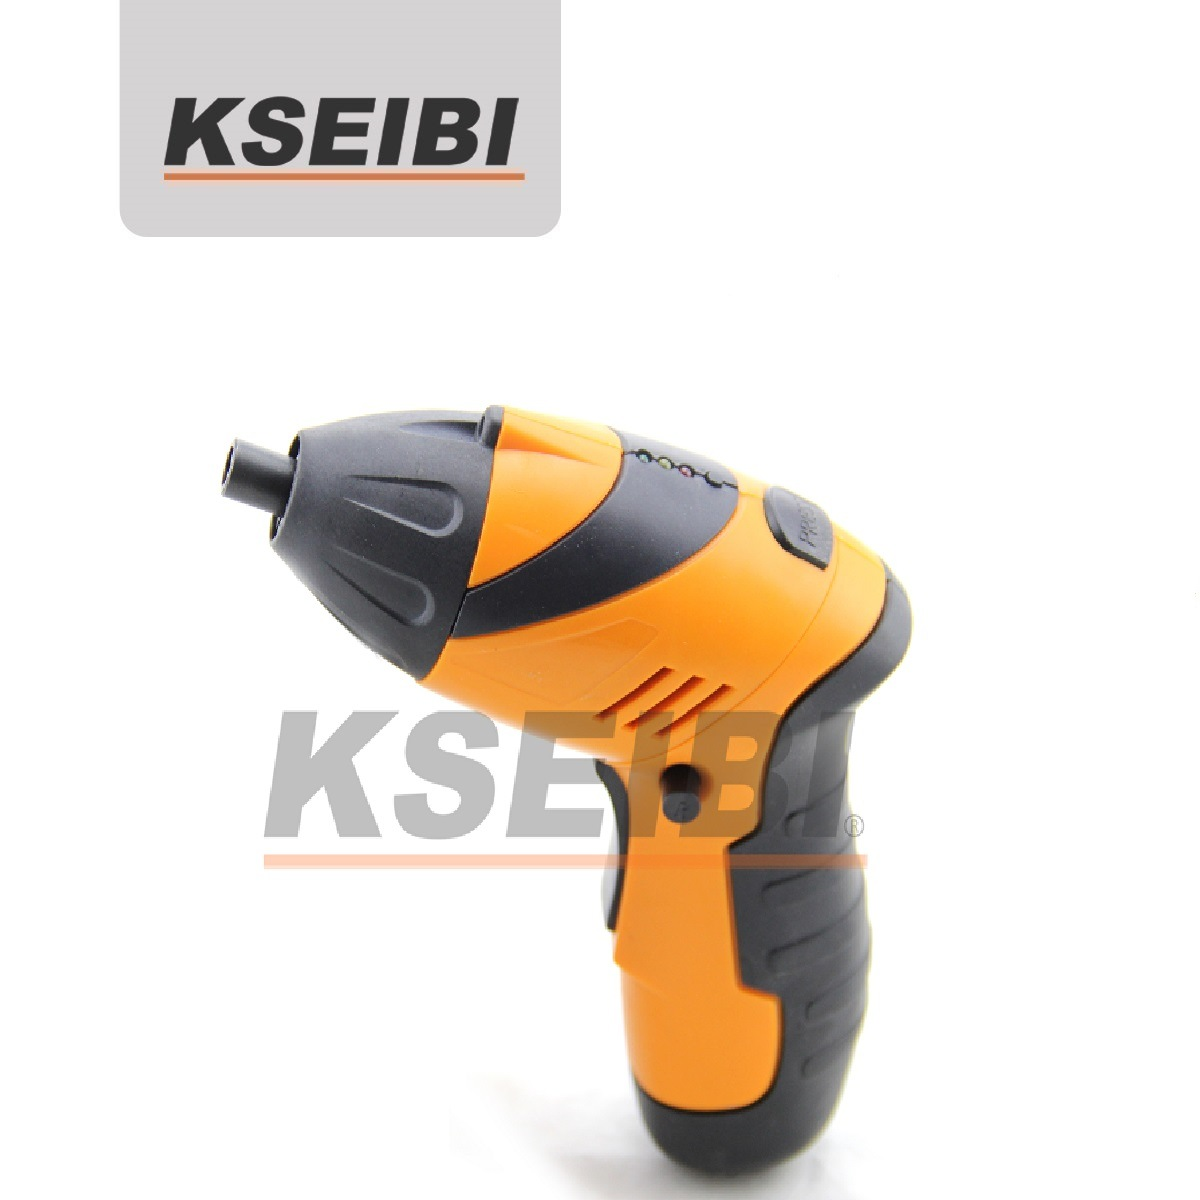 Convenient Kseibi Electric Cordless Screwdriver with Light Weight